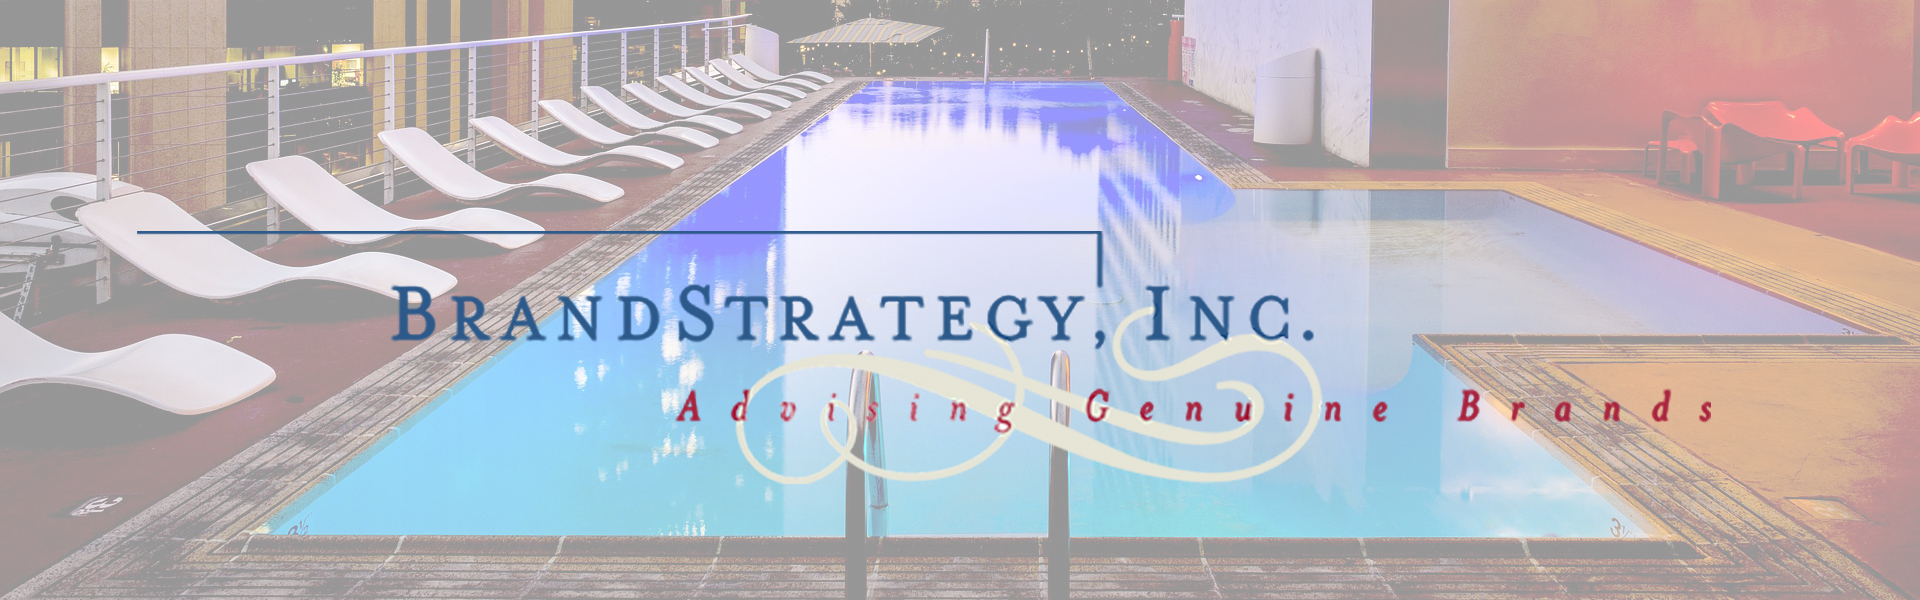 brand-strategy-banner